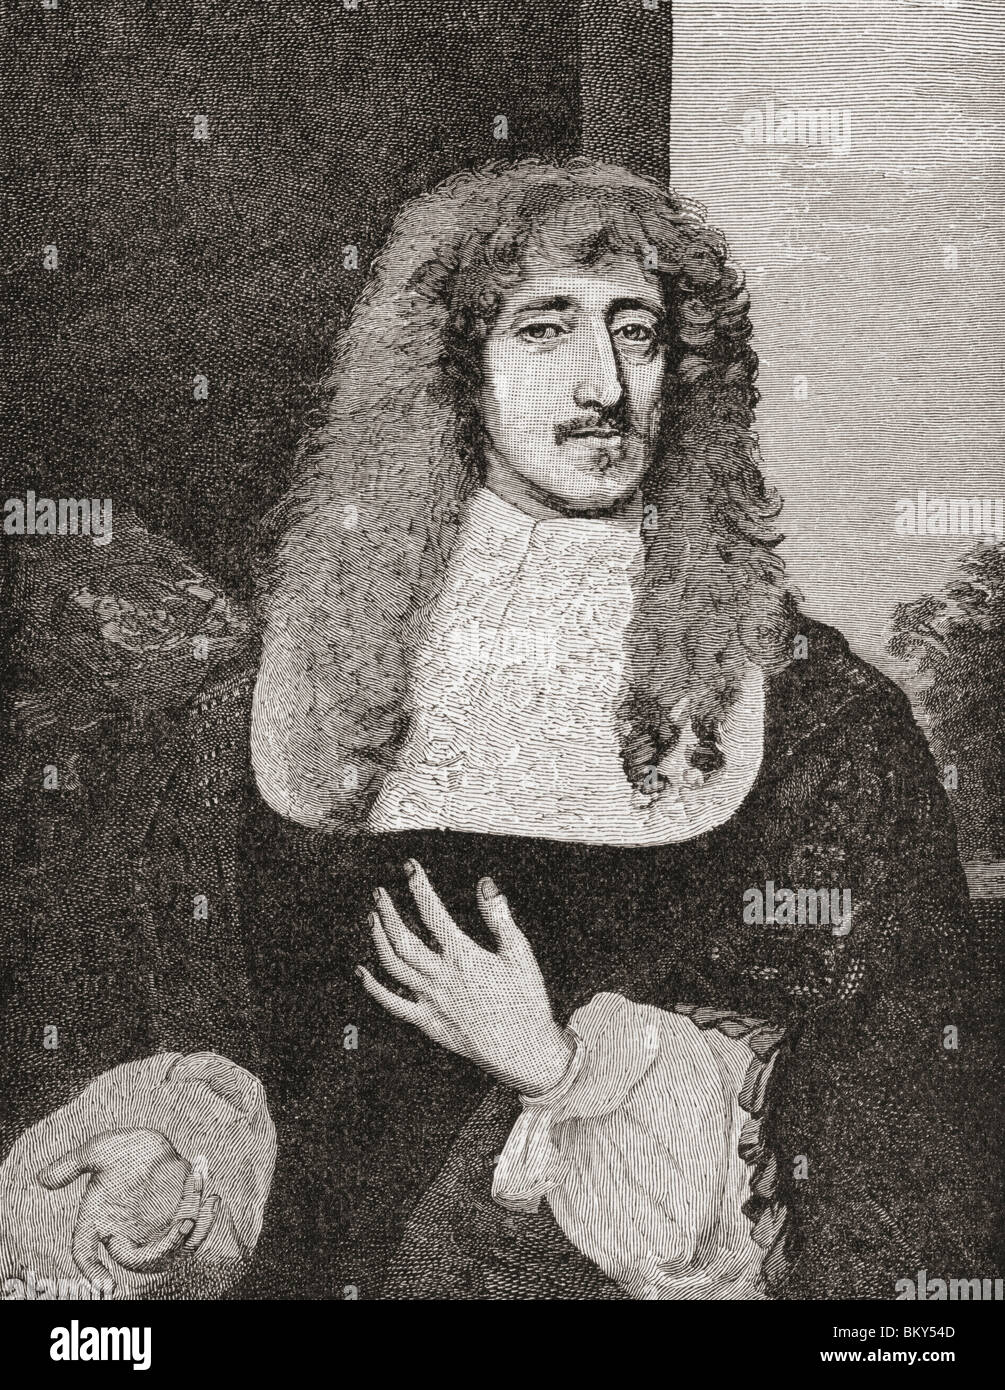 Anthony Ashley Cooper, 1st Earl of Shaftesbury 1621 to 1683. English politician during the Interregnum. - Stock Image